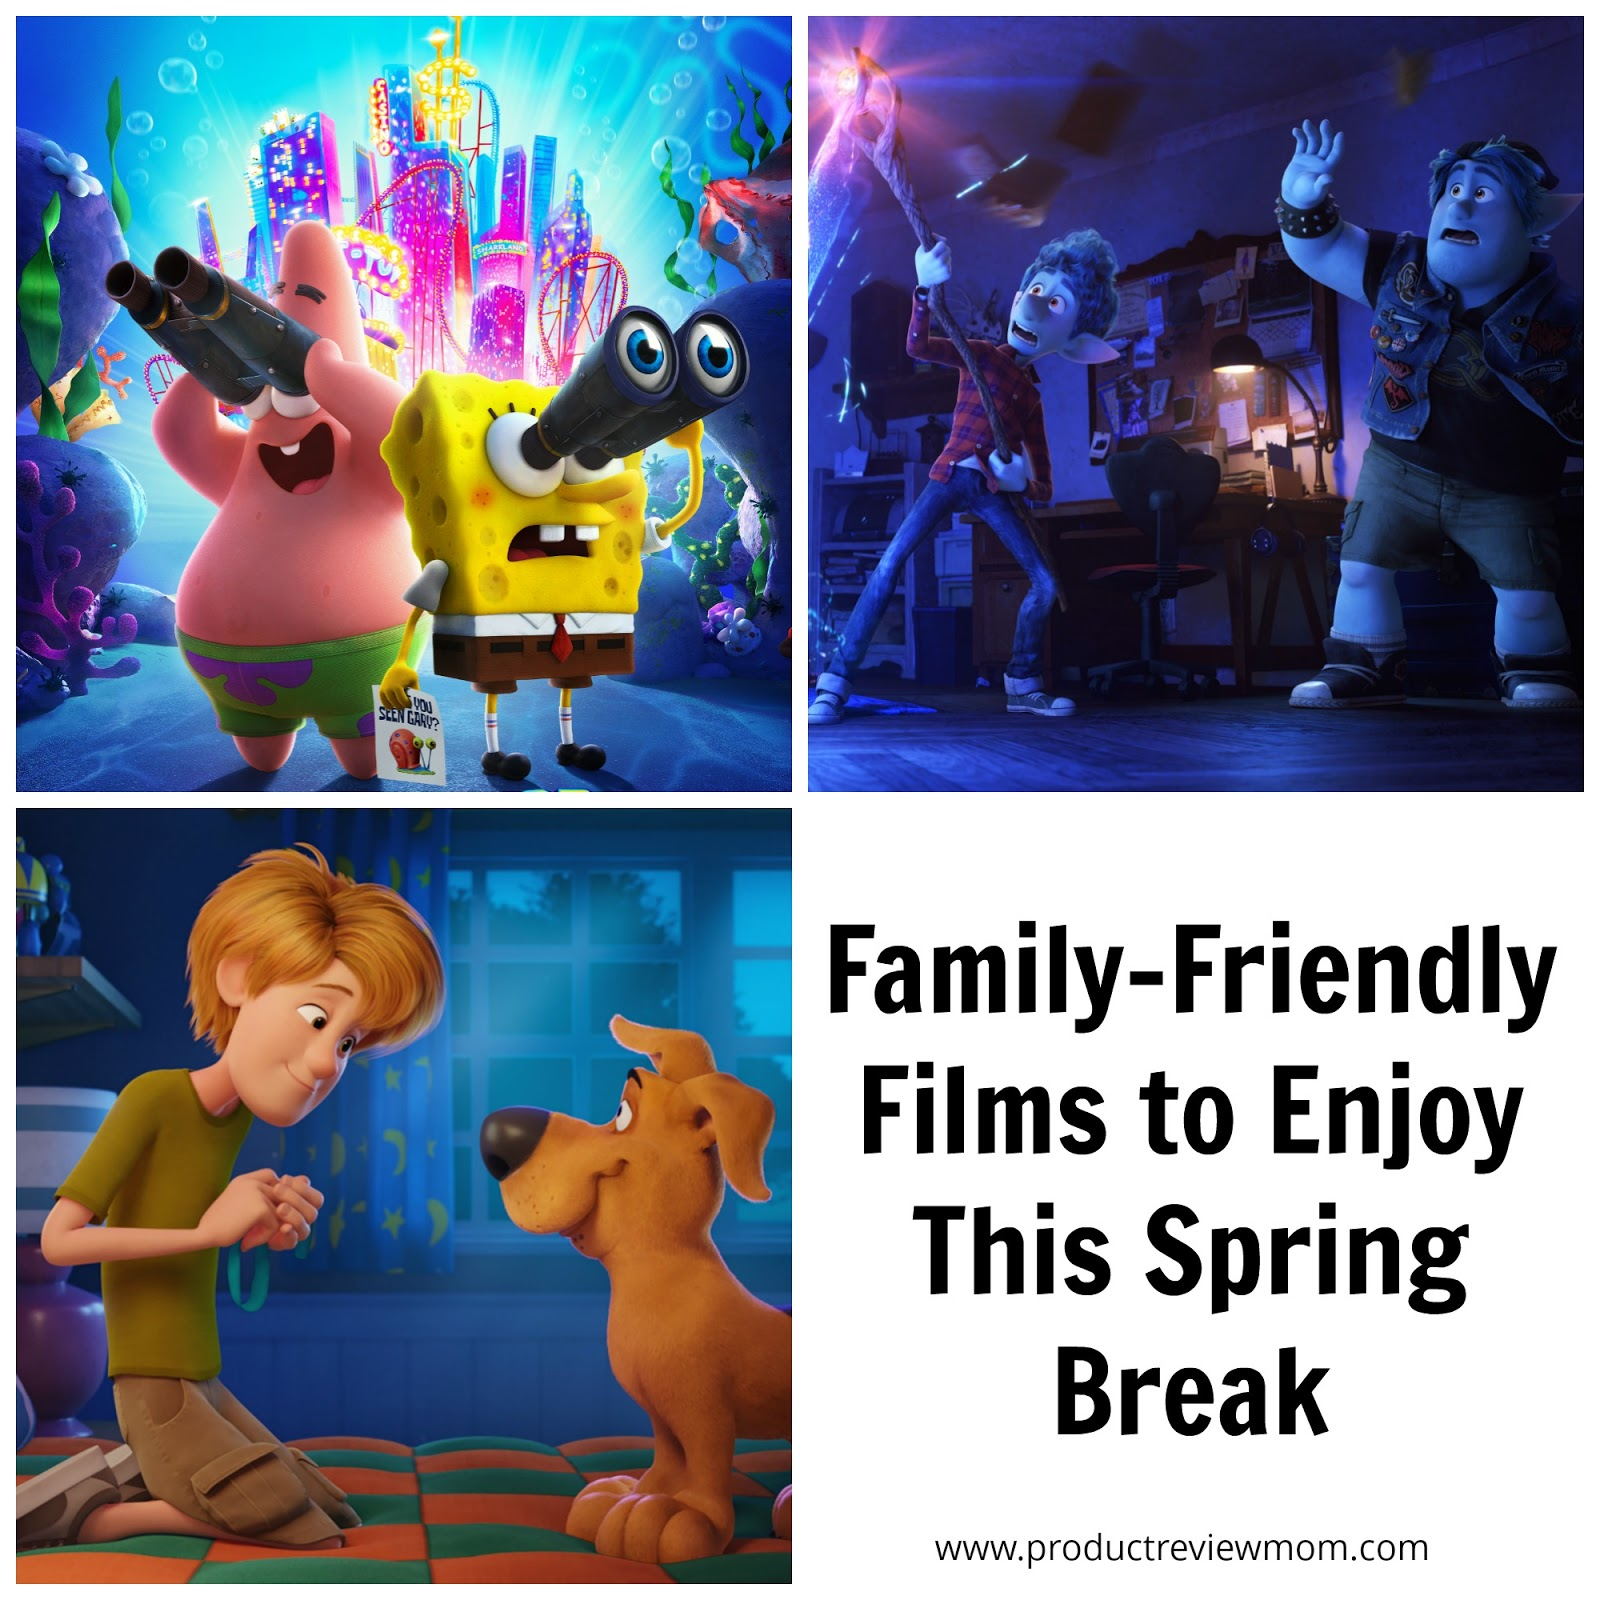 Family-Friendly Films to Enjoy This Spring Break